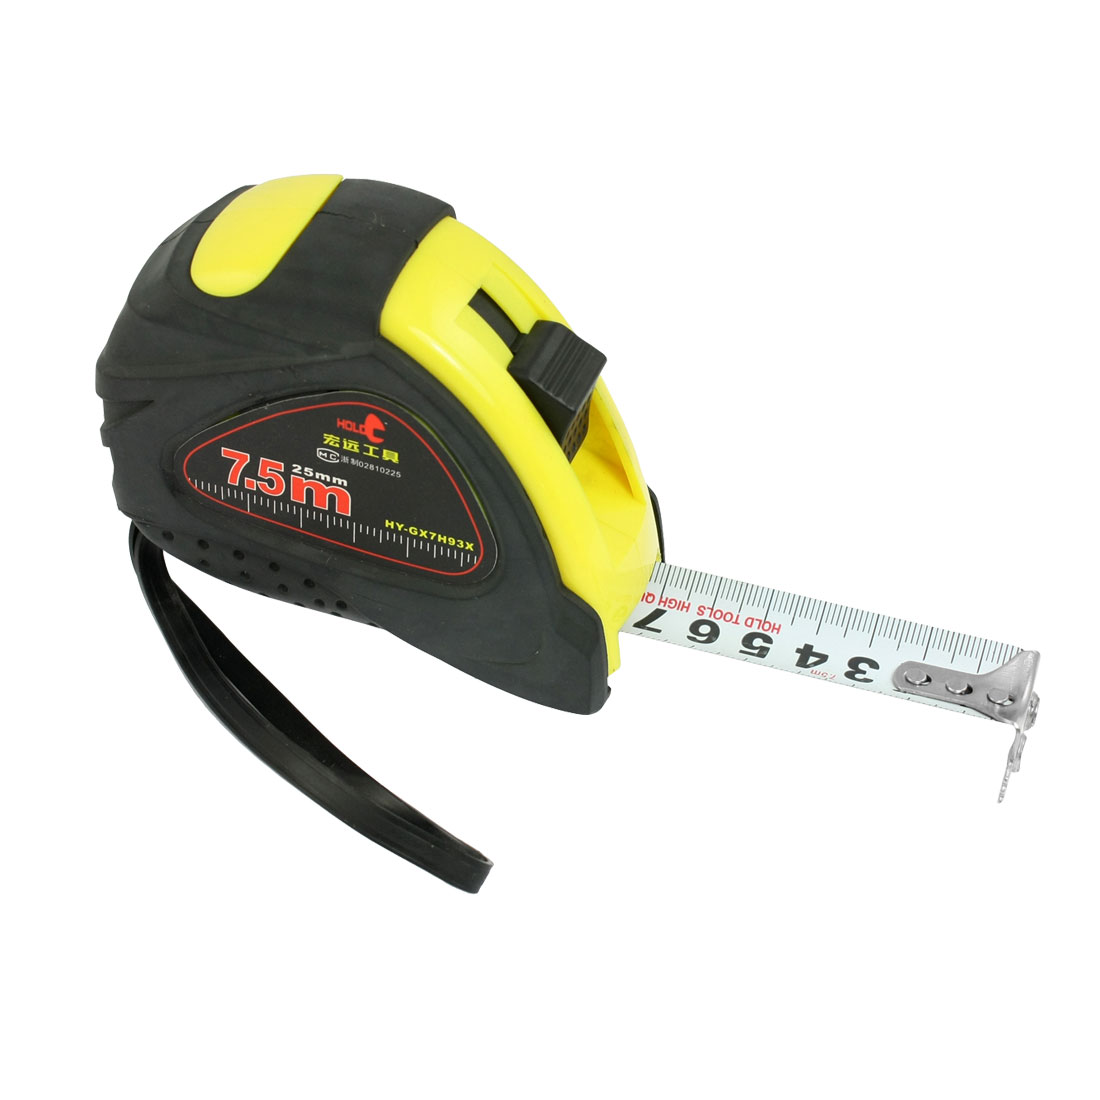 7.5M x 25mm Retractable Flexible Tape Magnetic Measure Ruler Black Yellow